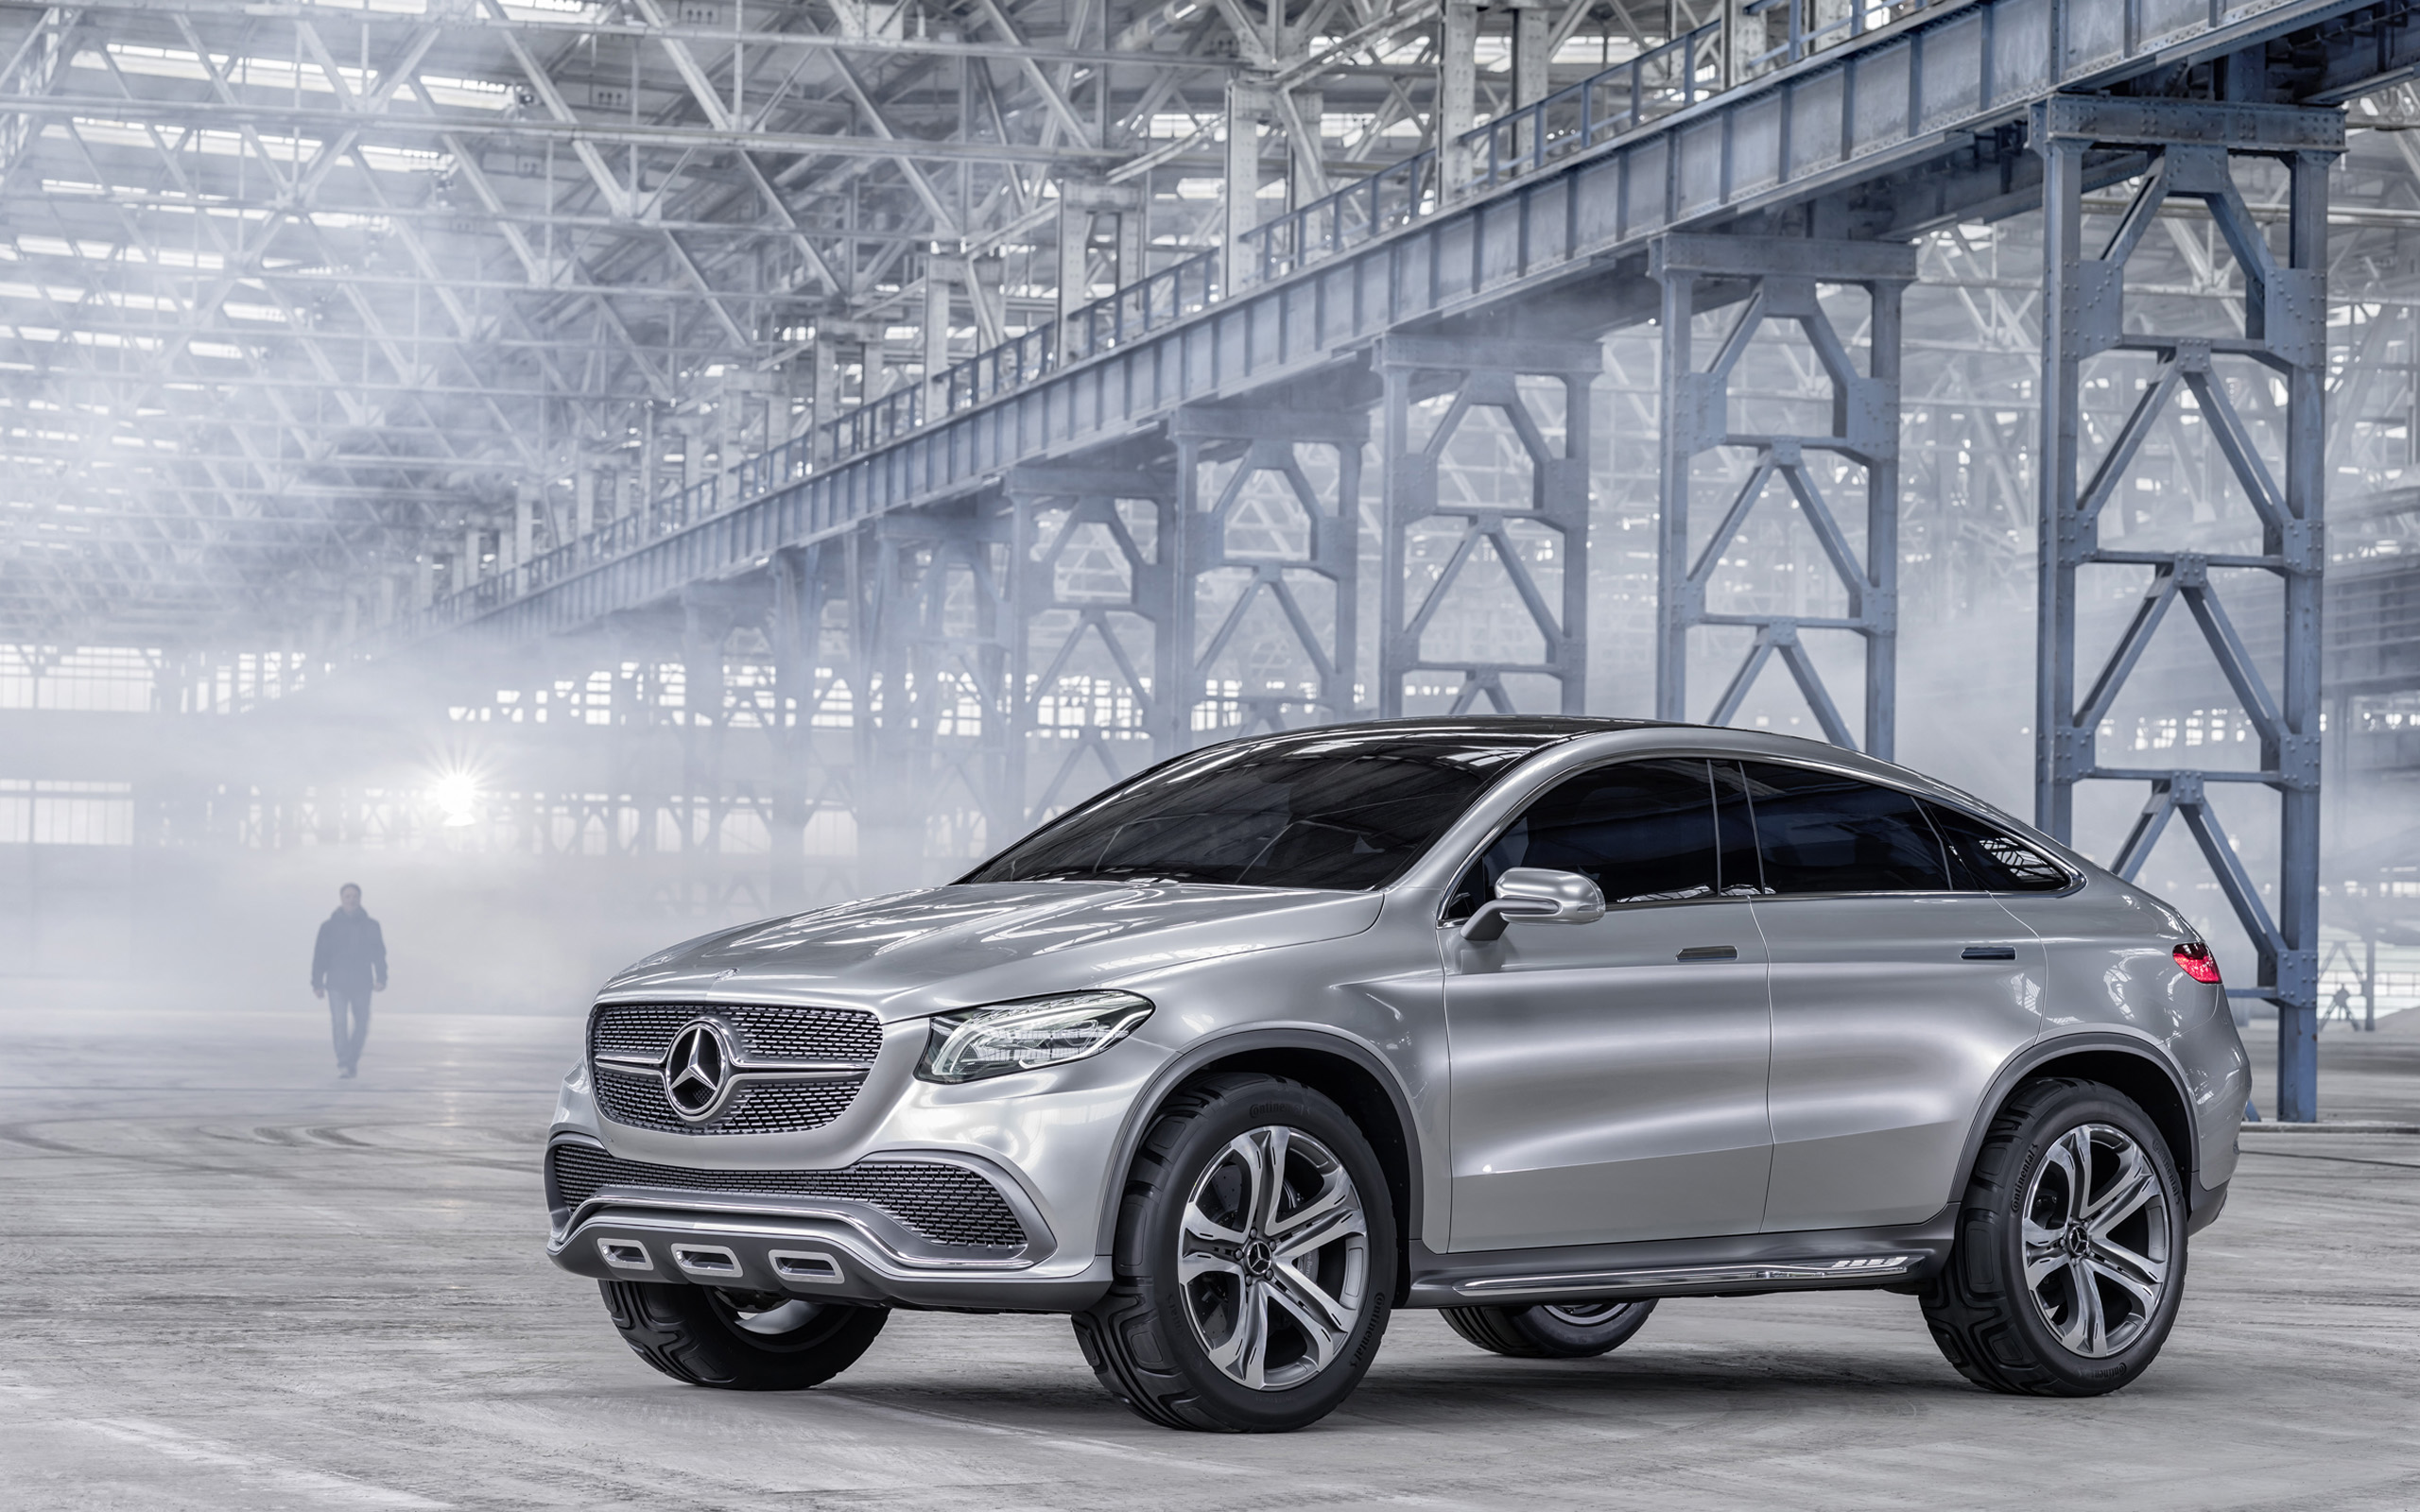 2014 mercedes benz concept coupe suv 3 wallpaper hd car for Camioneta mercedes benz